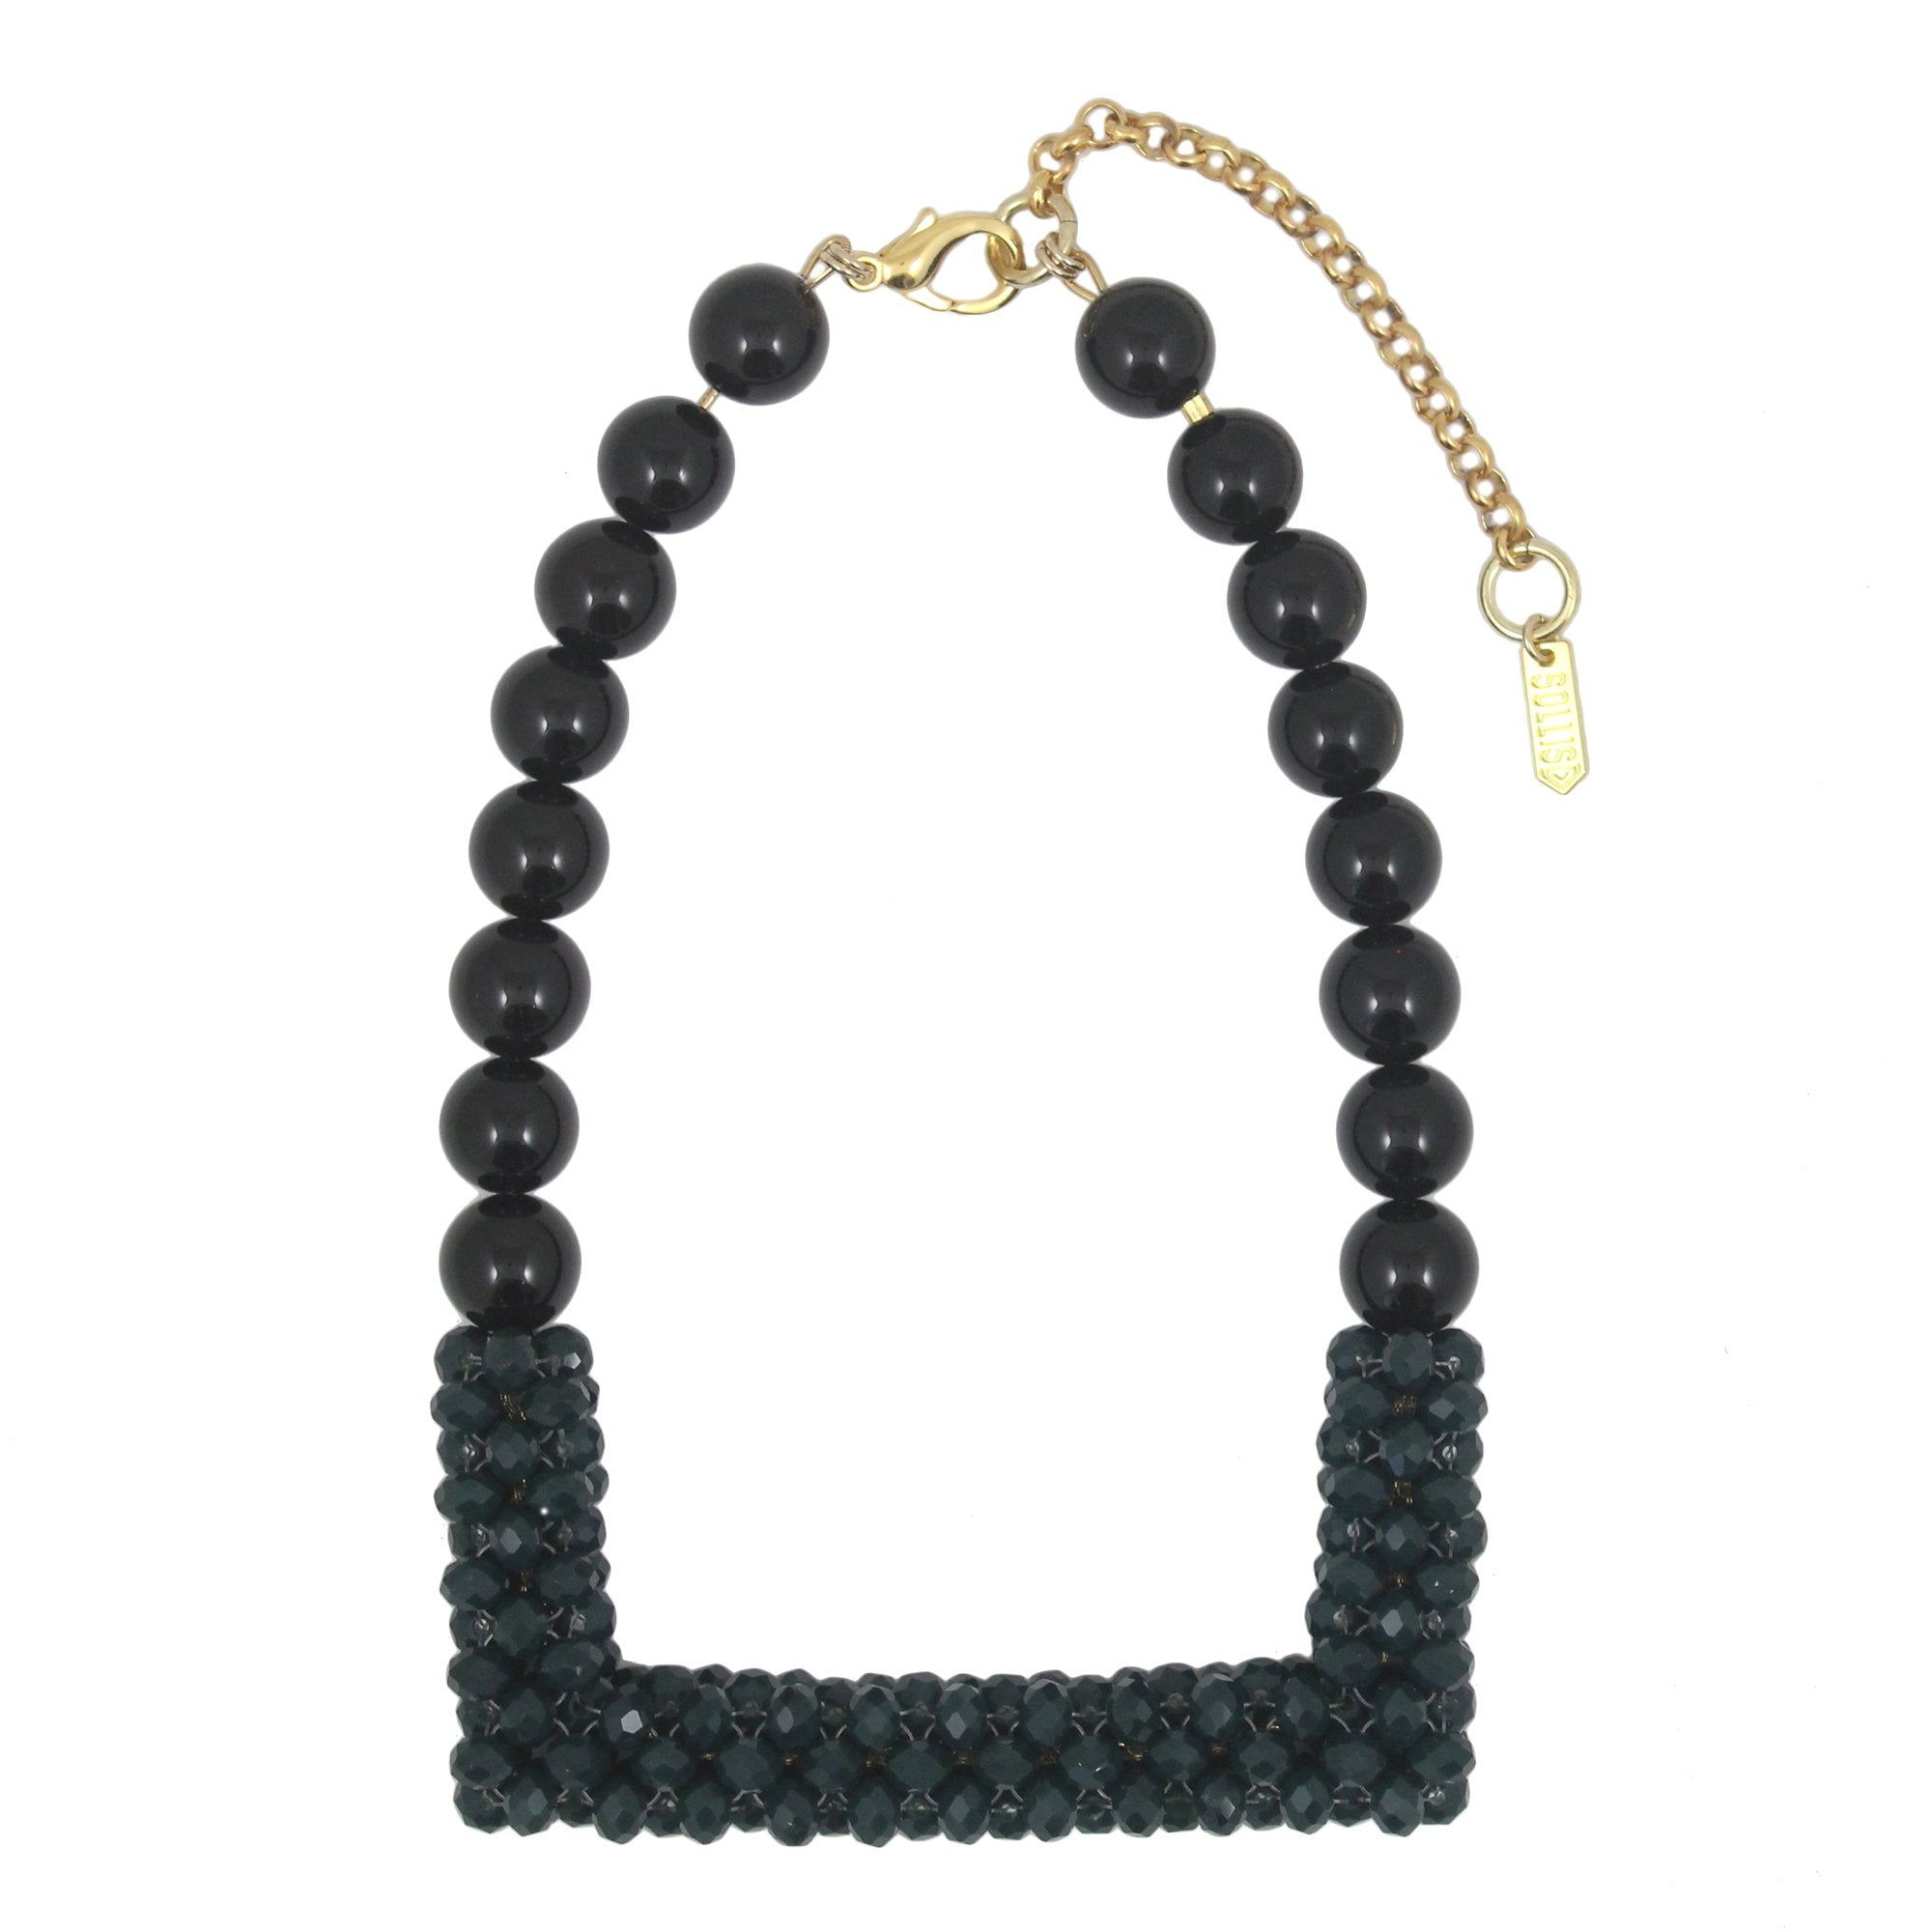 YARRA necklace - 40% OFF